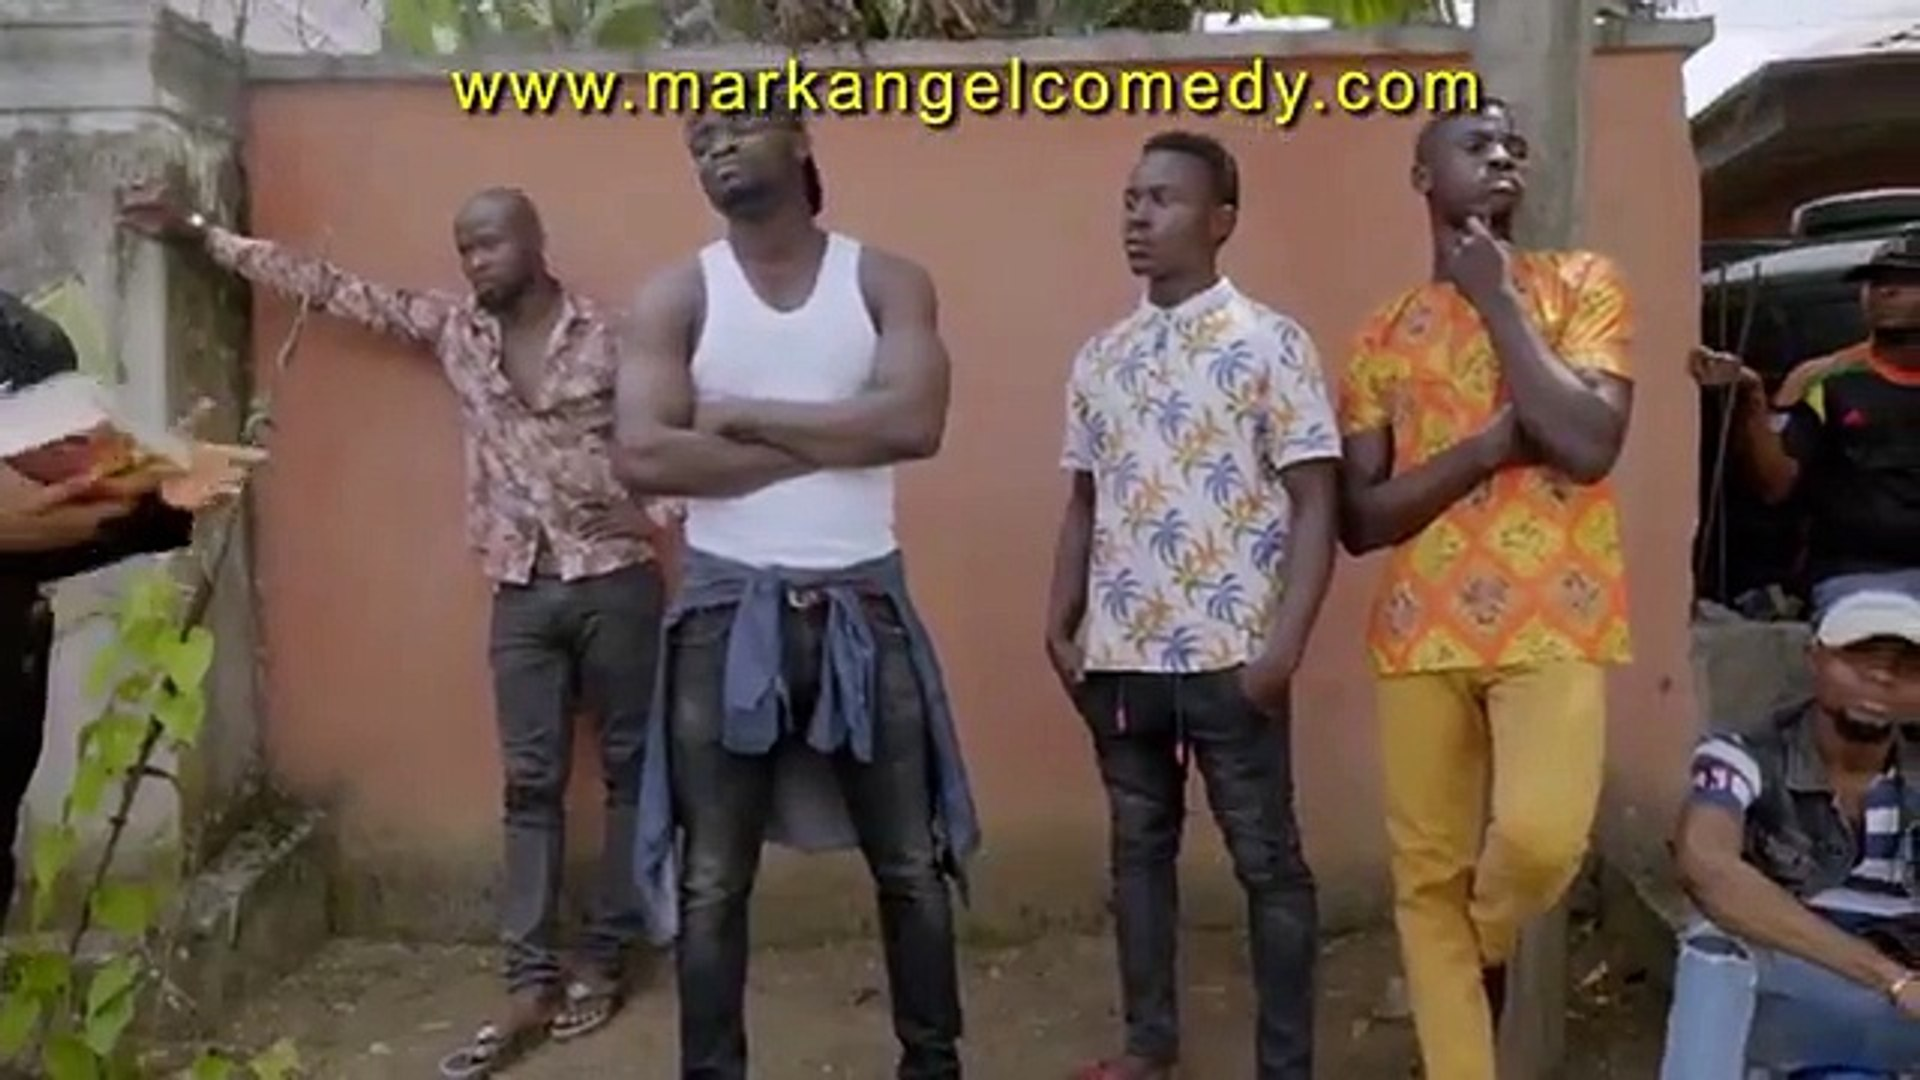 Very funny Mark Angel Comedy to make you laugh out loud. Denilson is a clown!